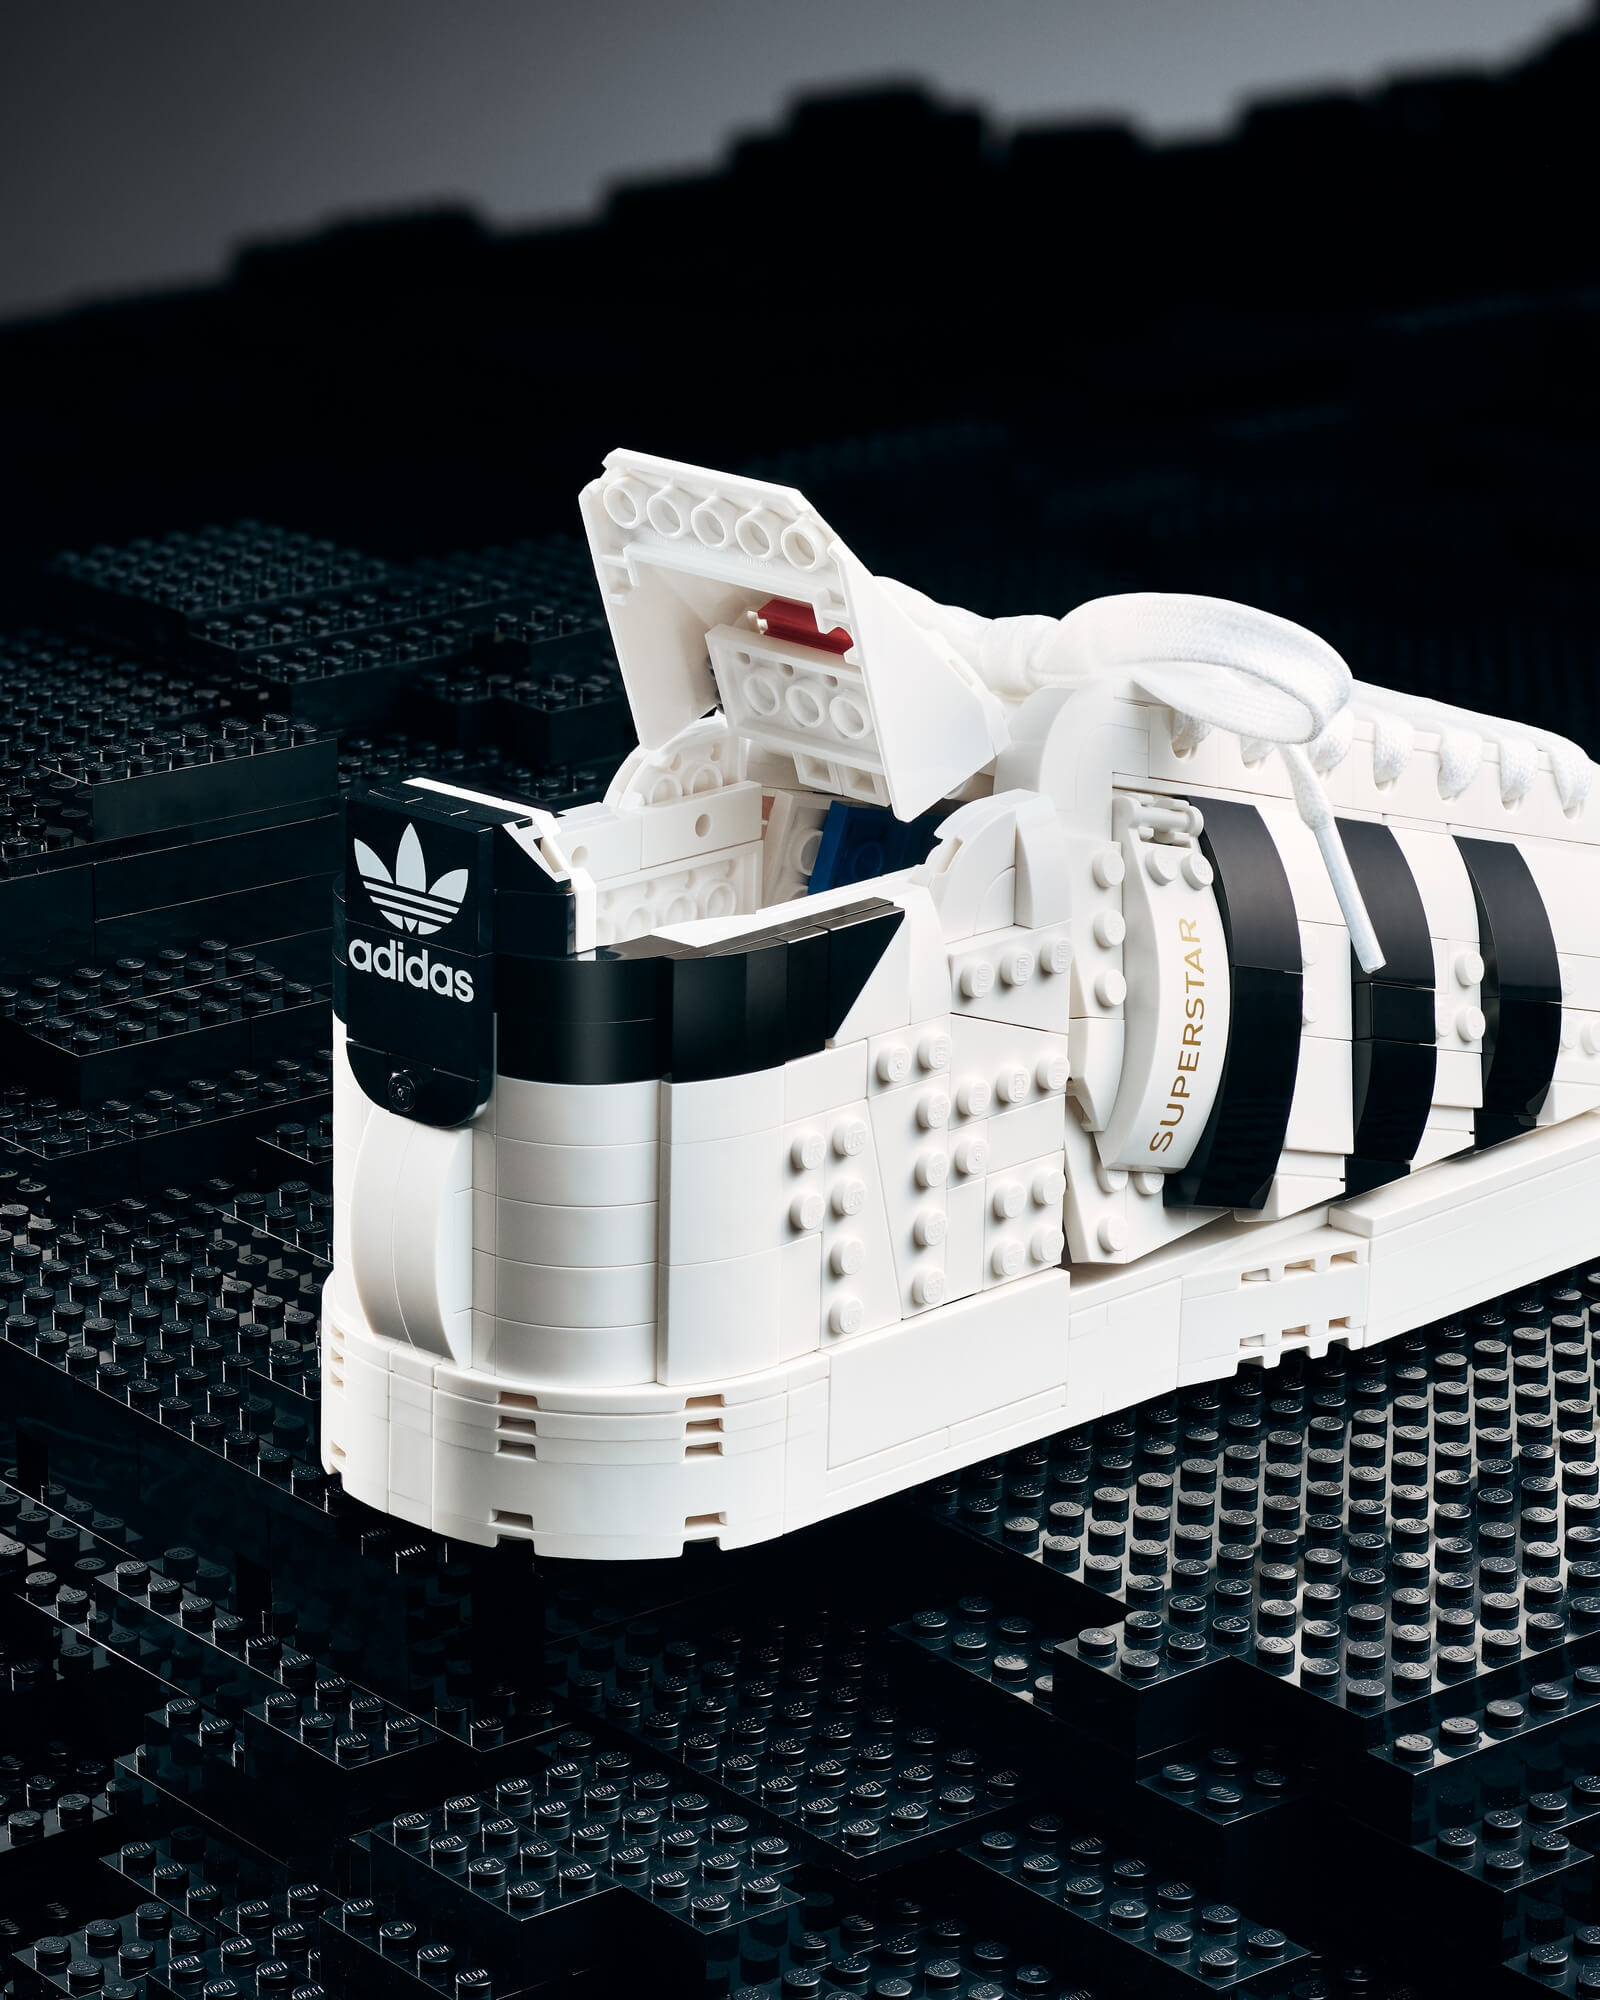 Buildable LEGO x adidas Superstar sneaker detail photo